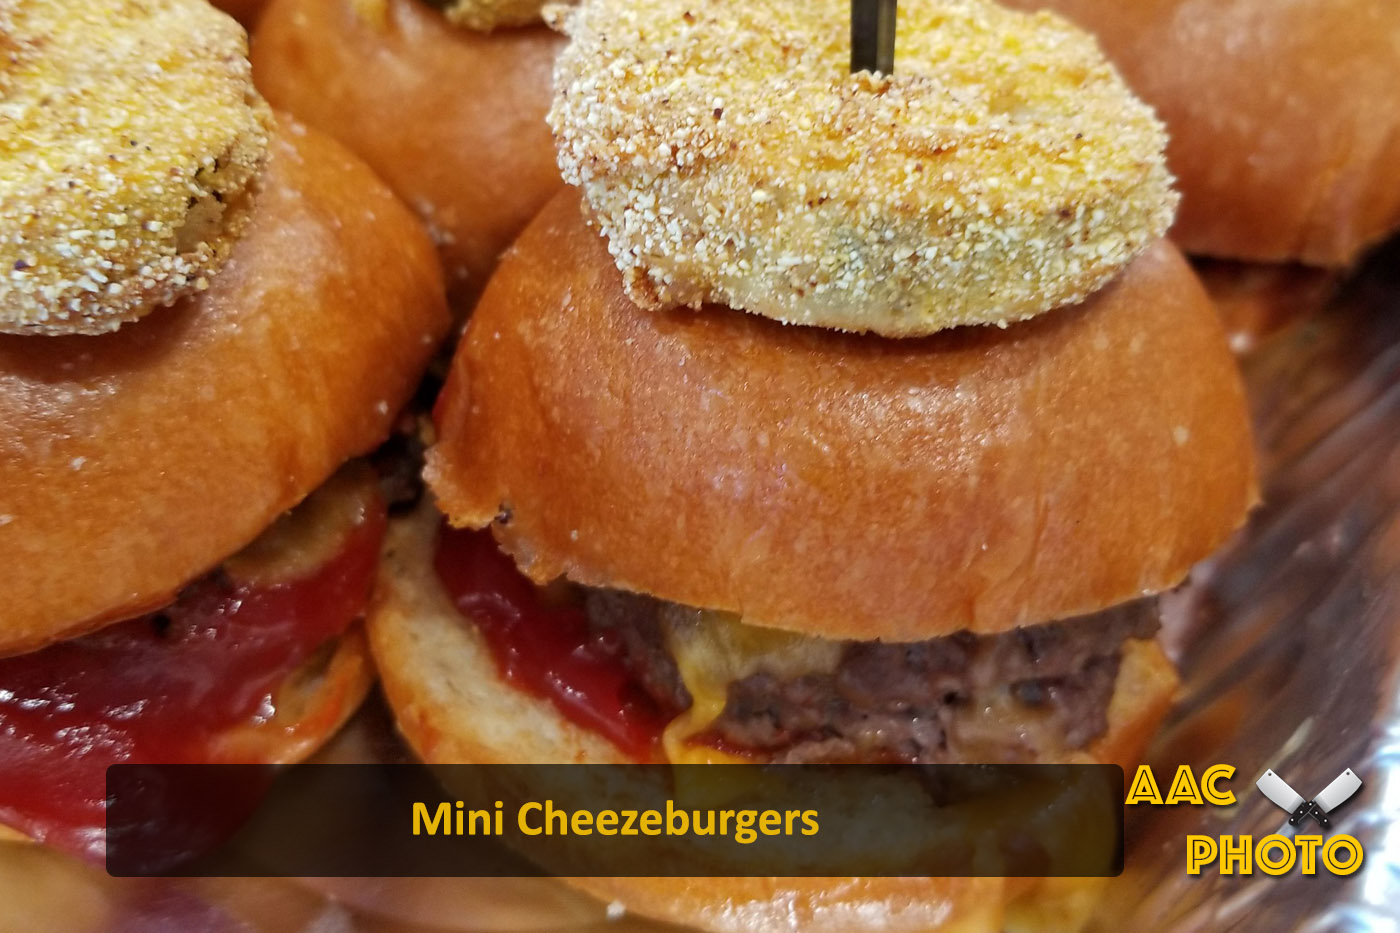 Mini Cheezeburgers